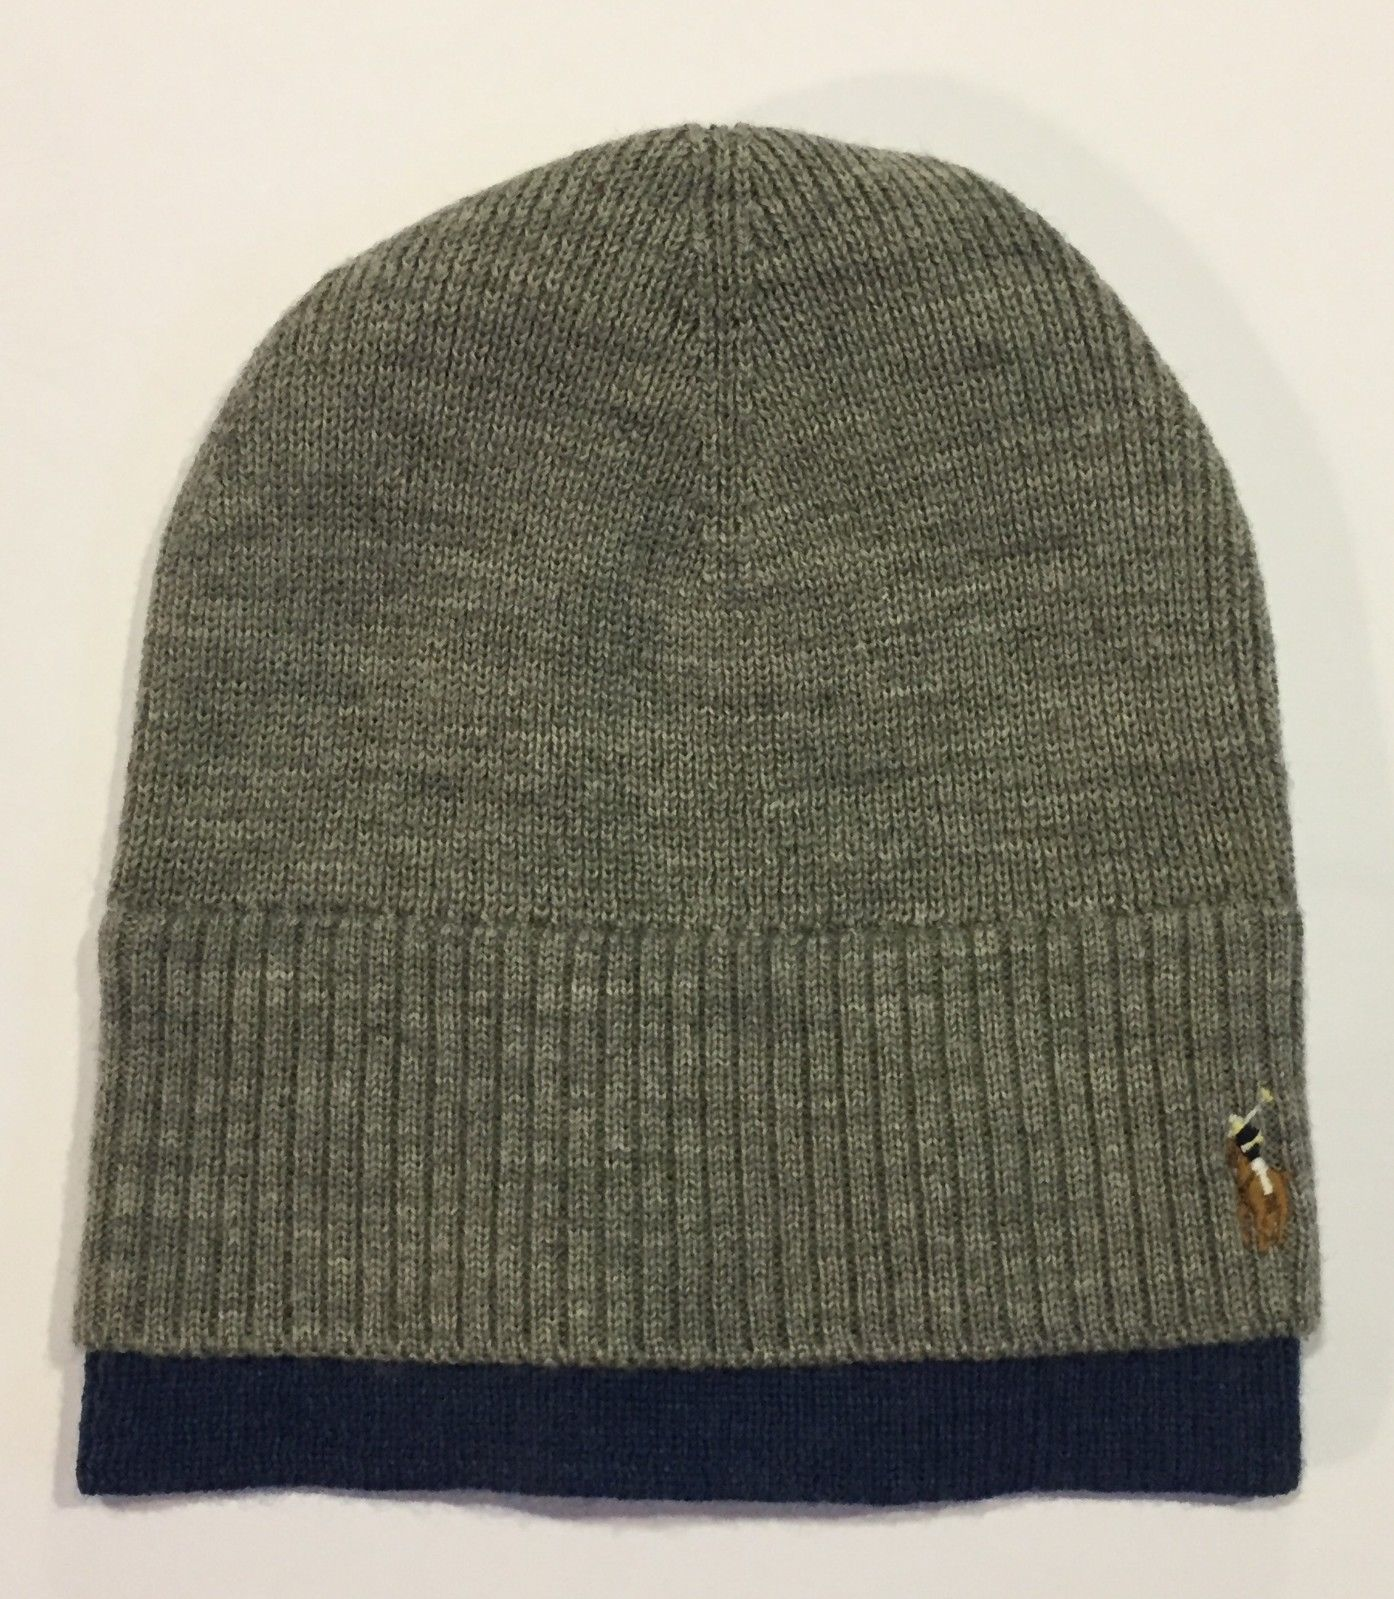 2509b6f5 Polo Ralph Lauren Men's Layered Beanie Skull and 35 similar items. 57